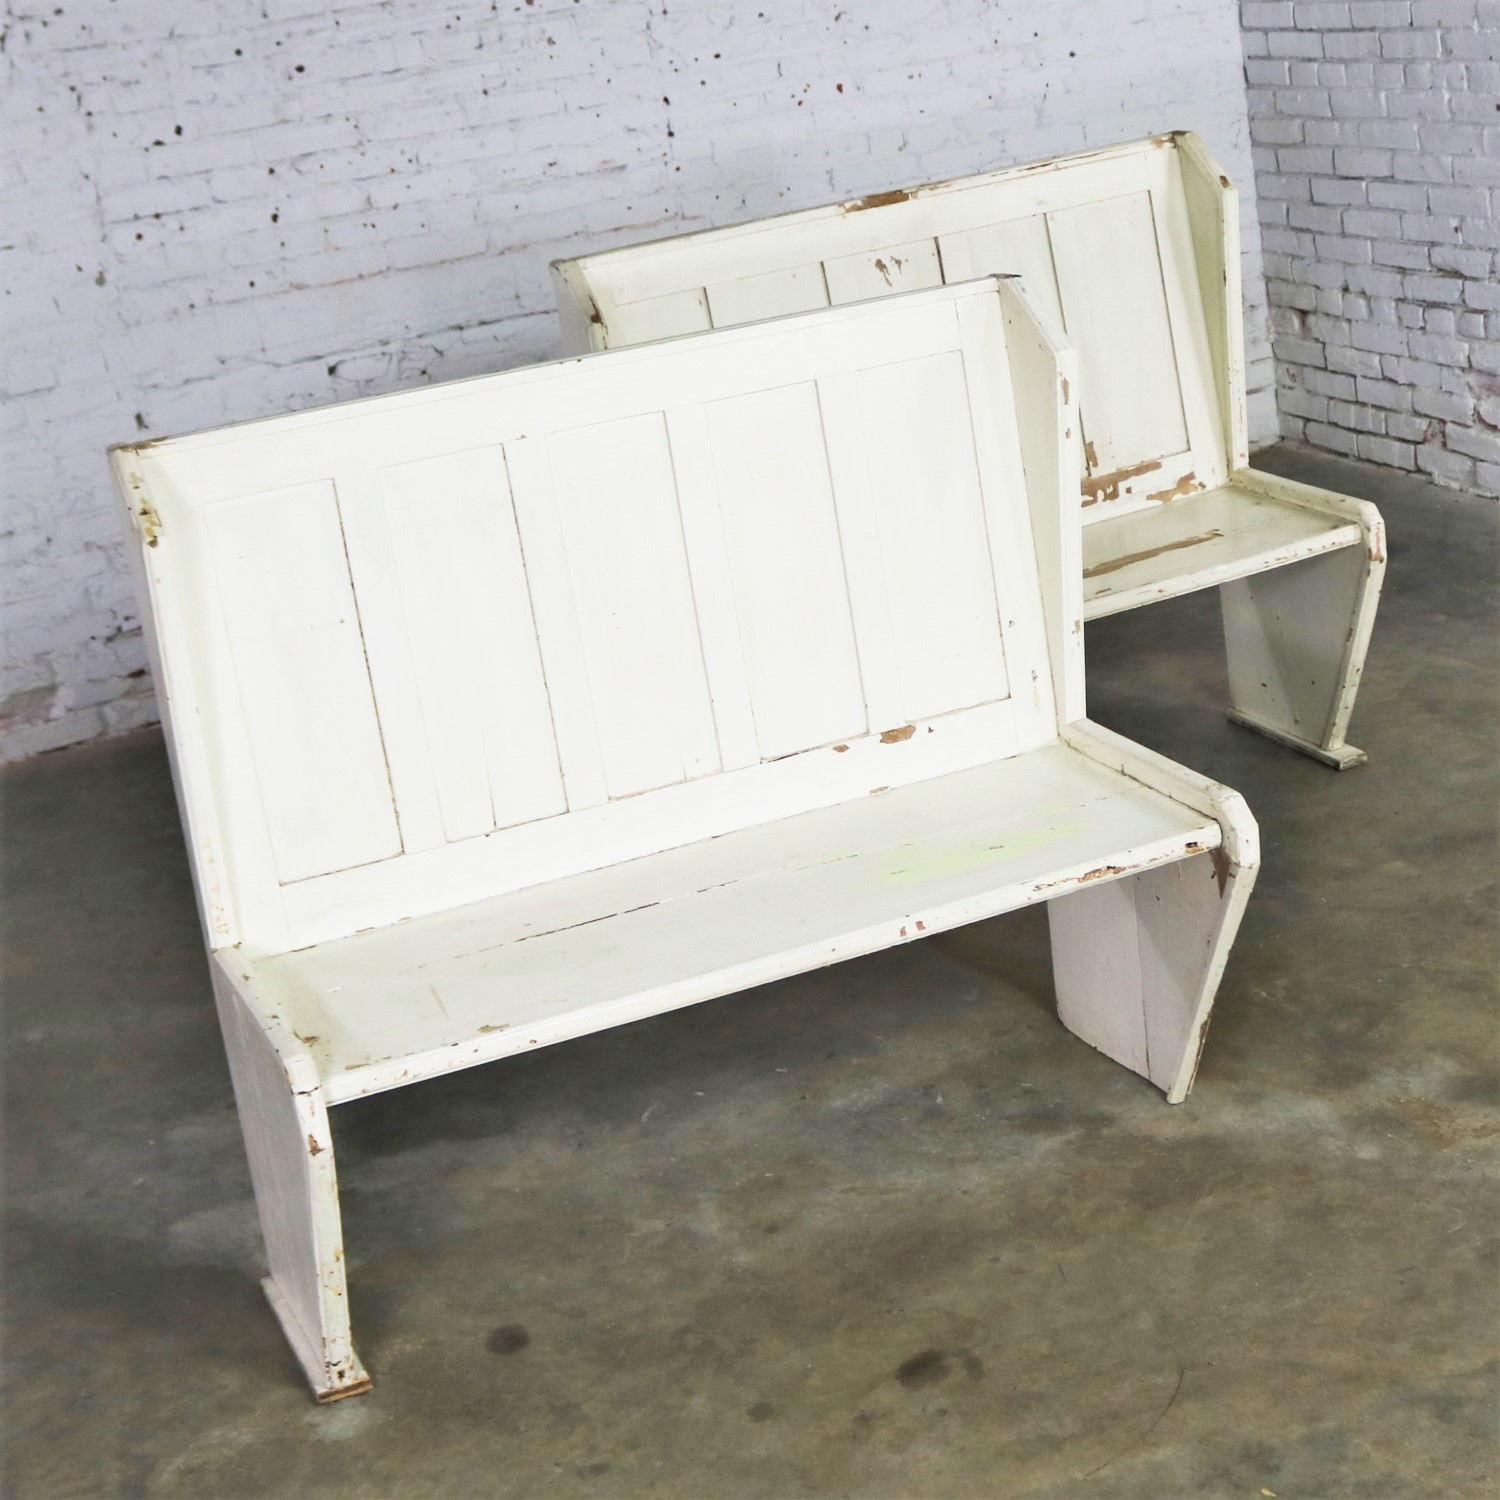 Excellent Rustic Arts And Crafts Black And White Diner Booth Banquette Machost Co Dining Chair Design Ideas Machostcouk